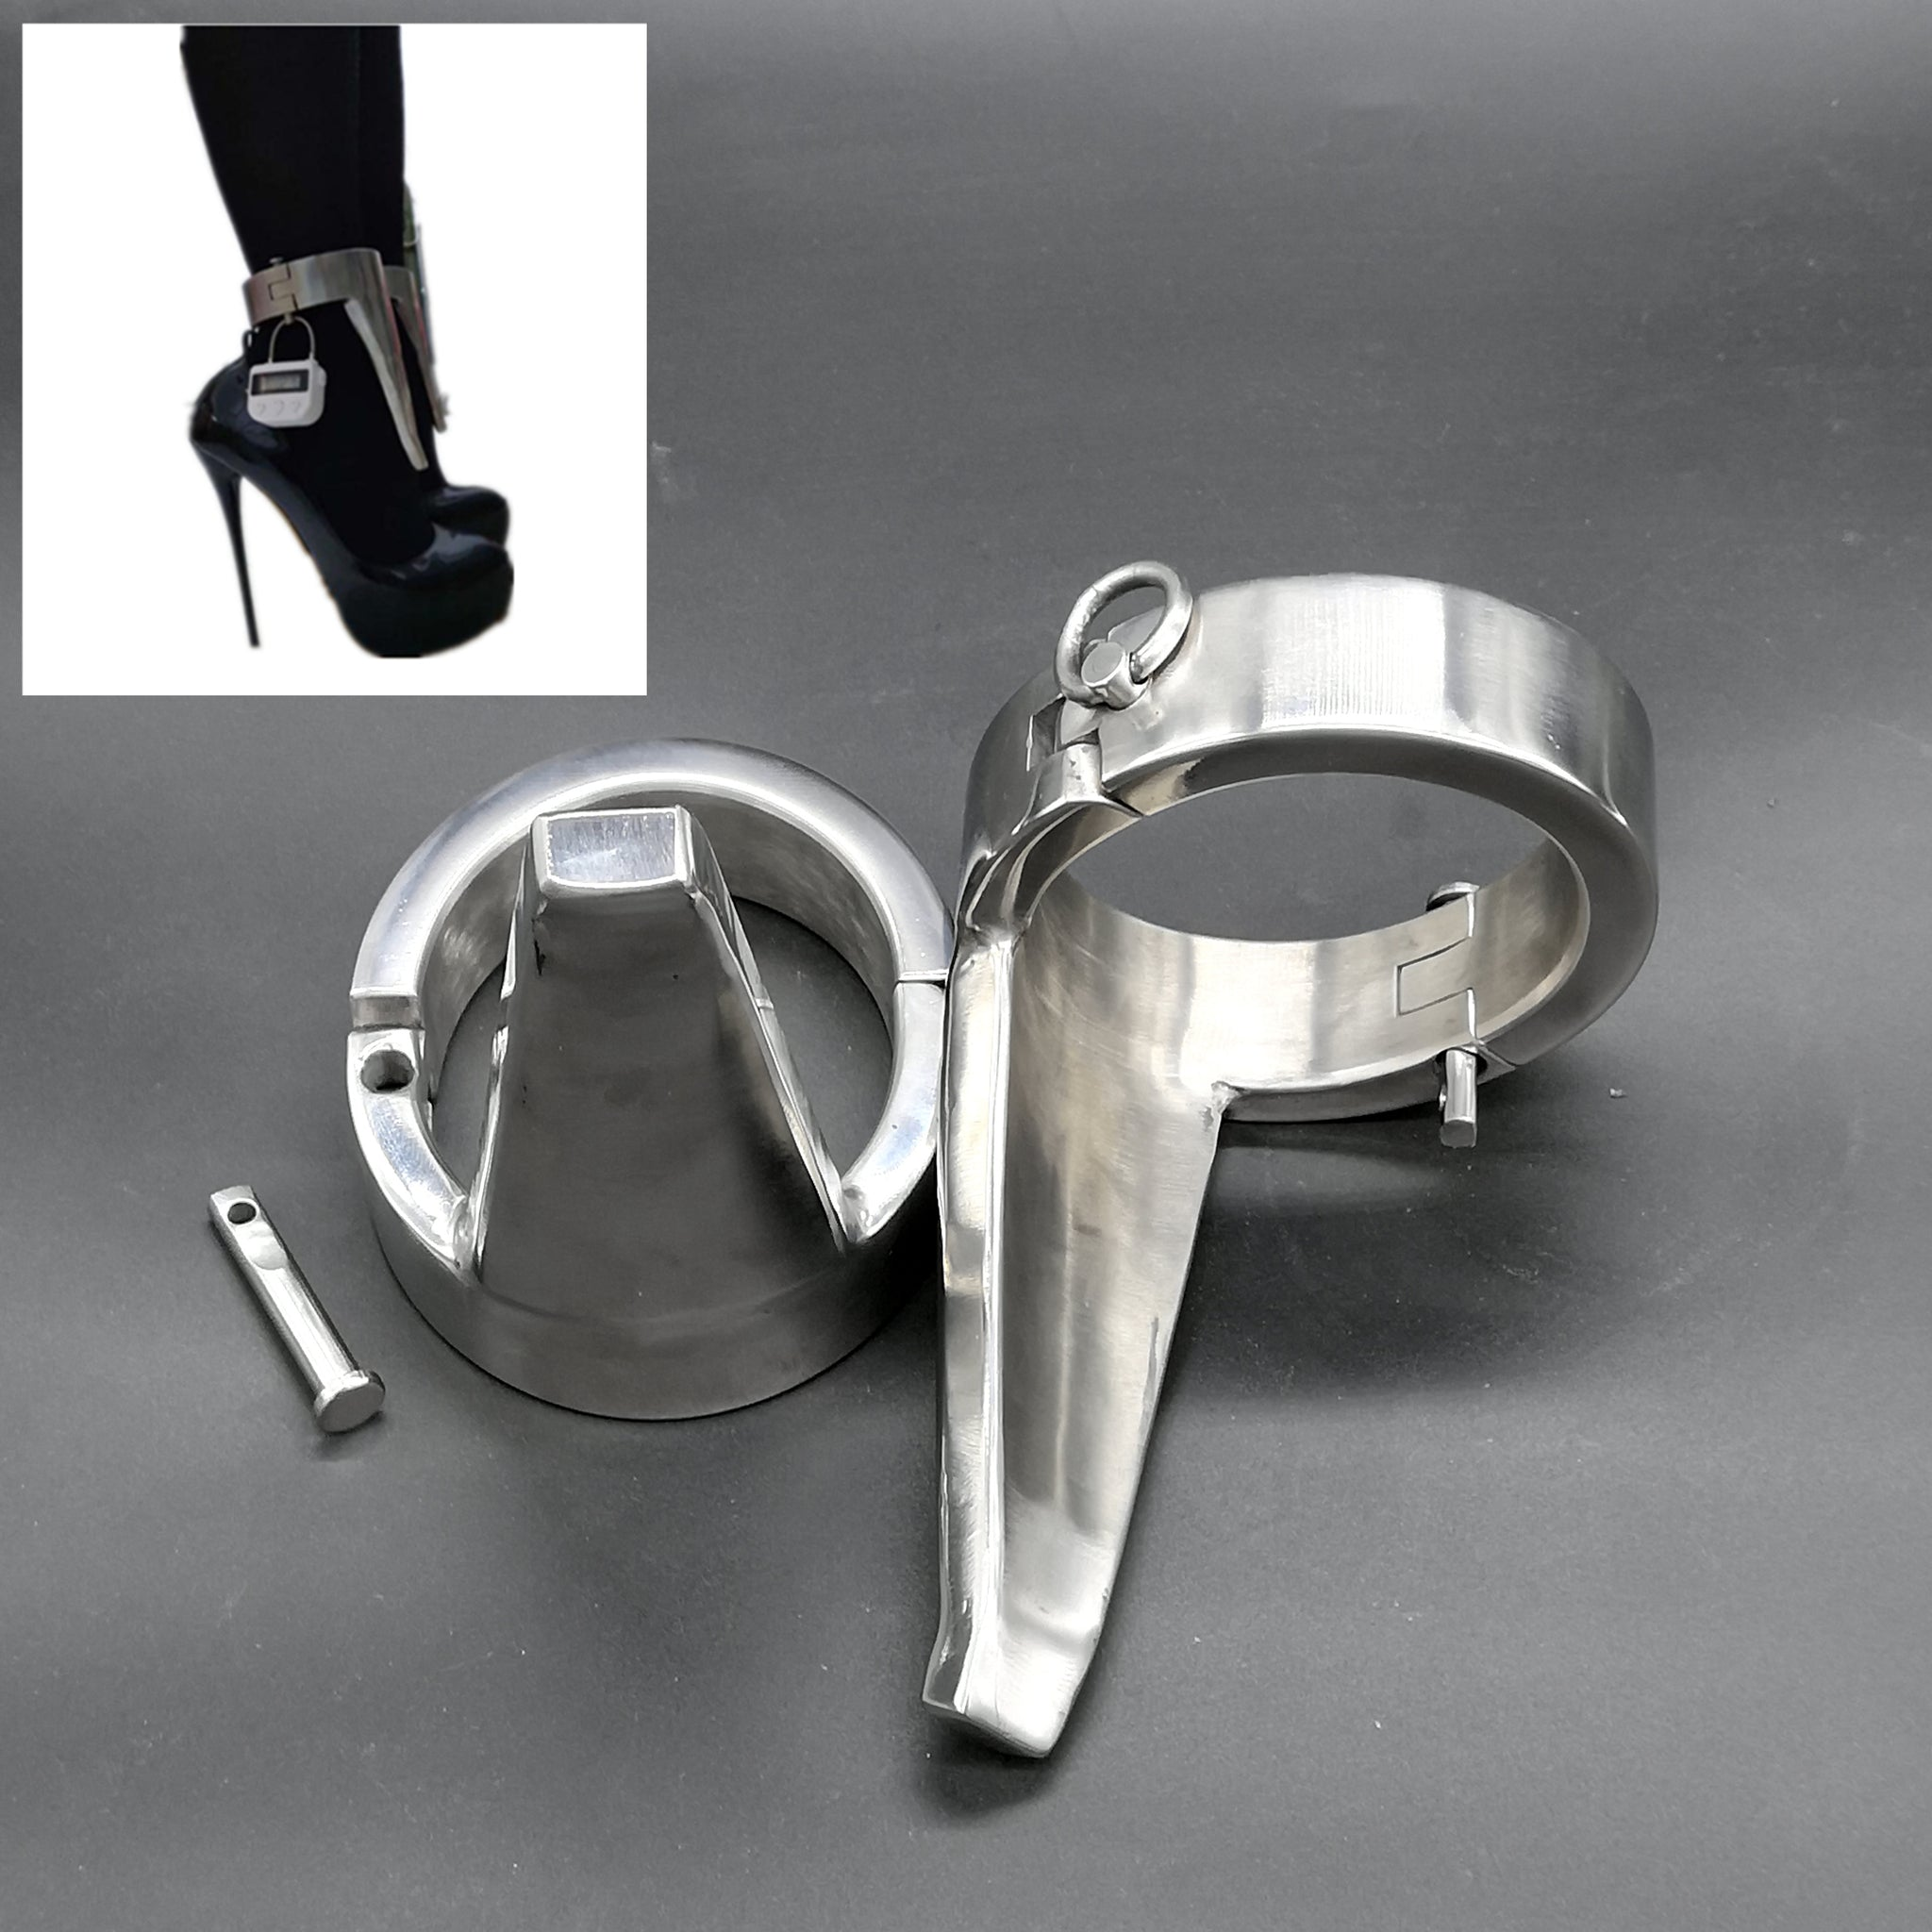 Handmade Ballet Ankle Cuffs Force To Wear High Heels Restraints Device